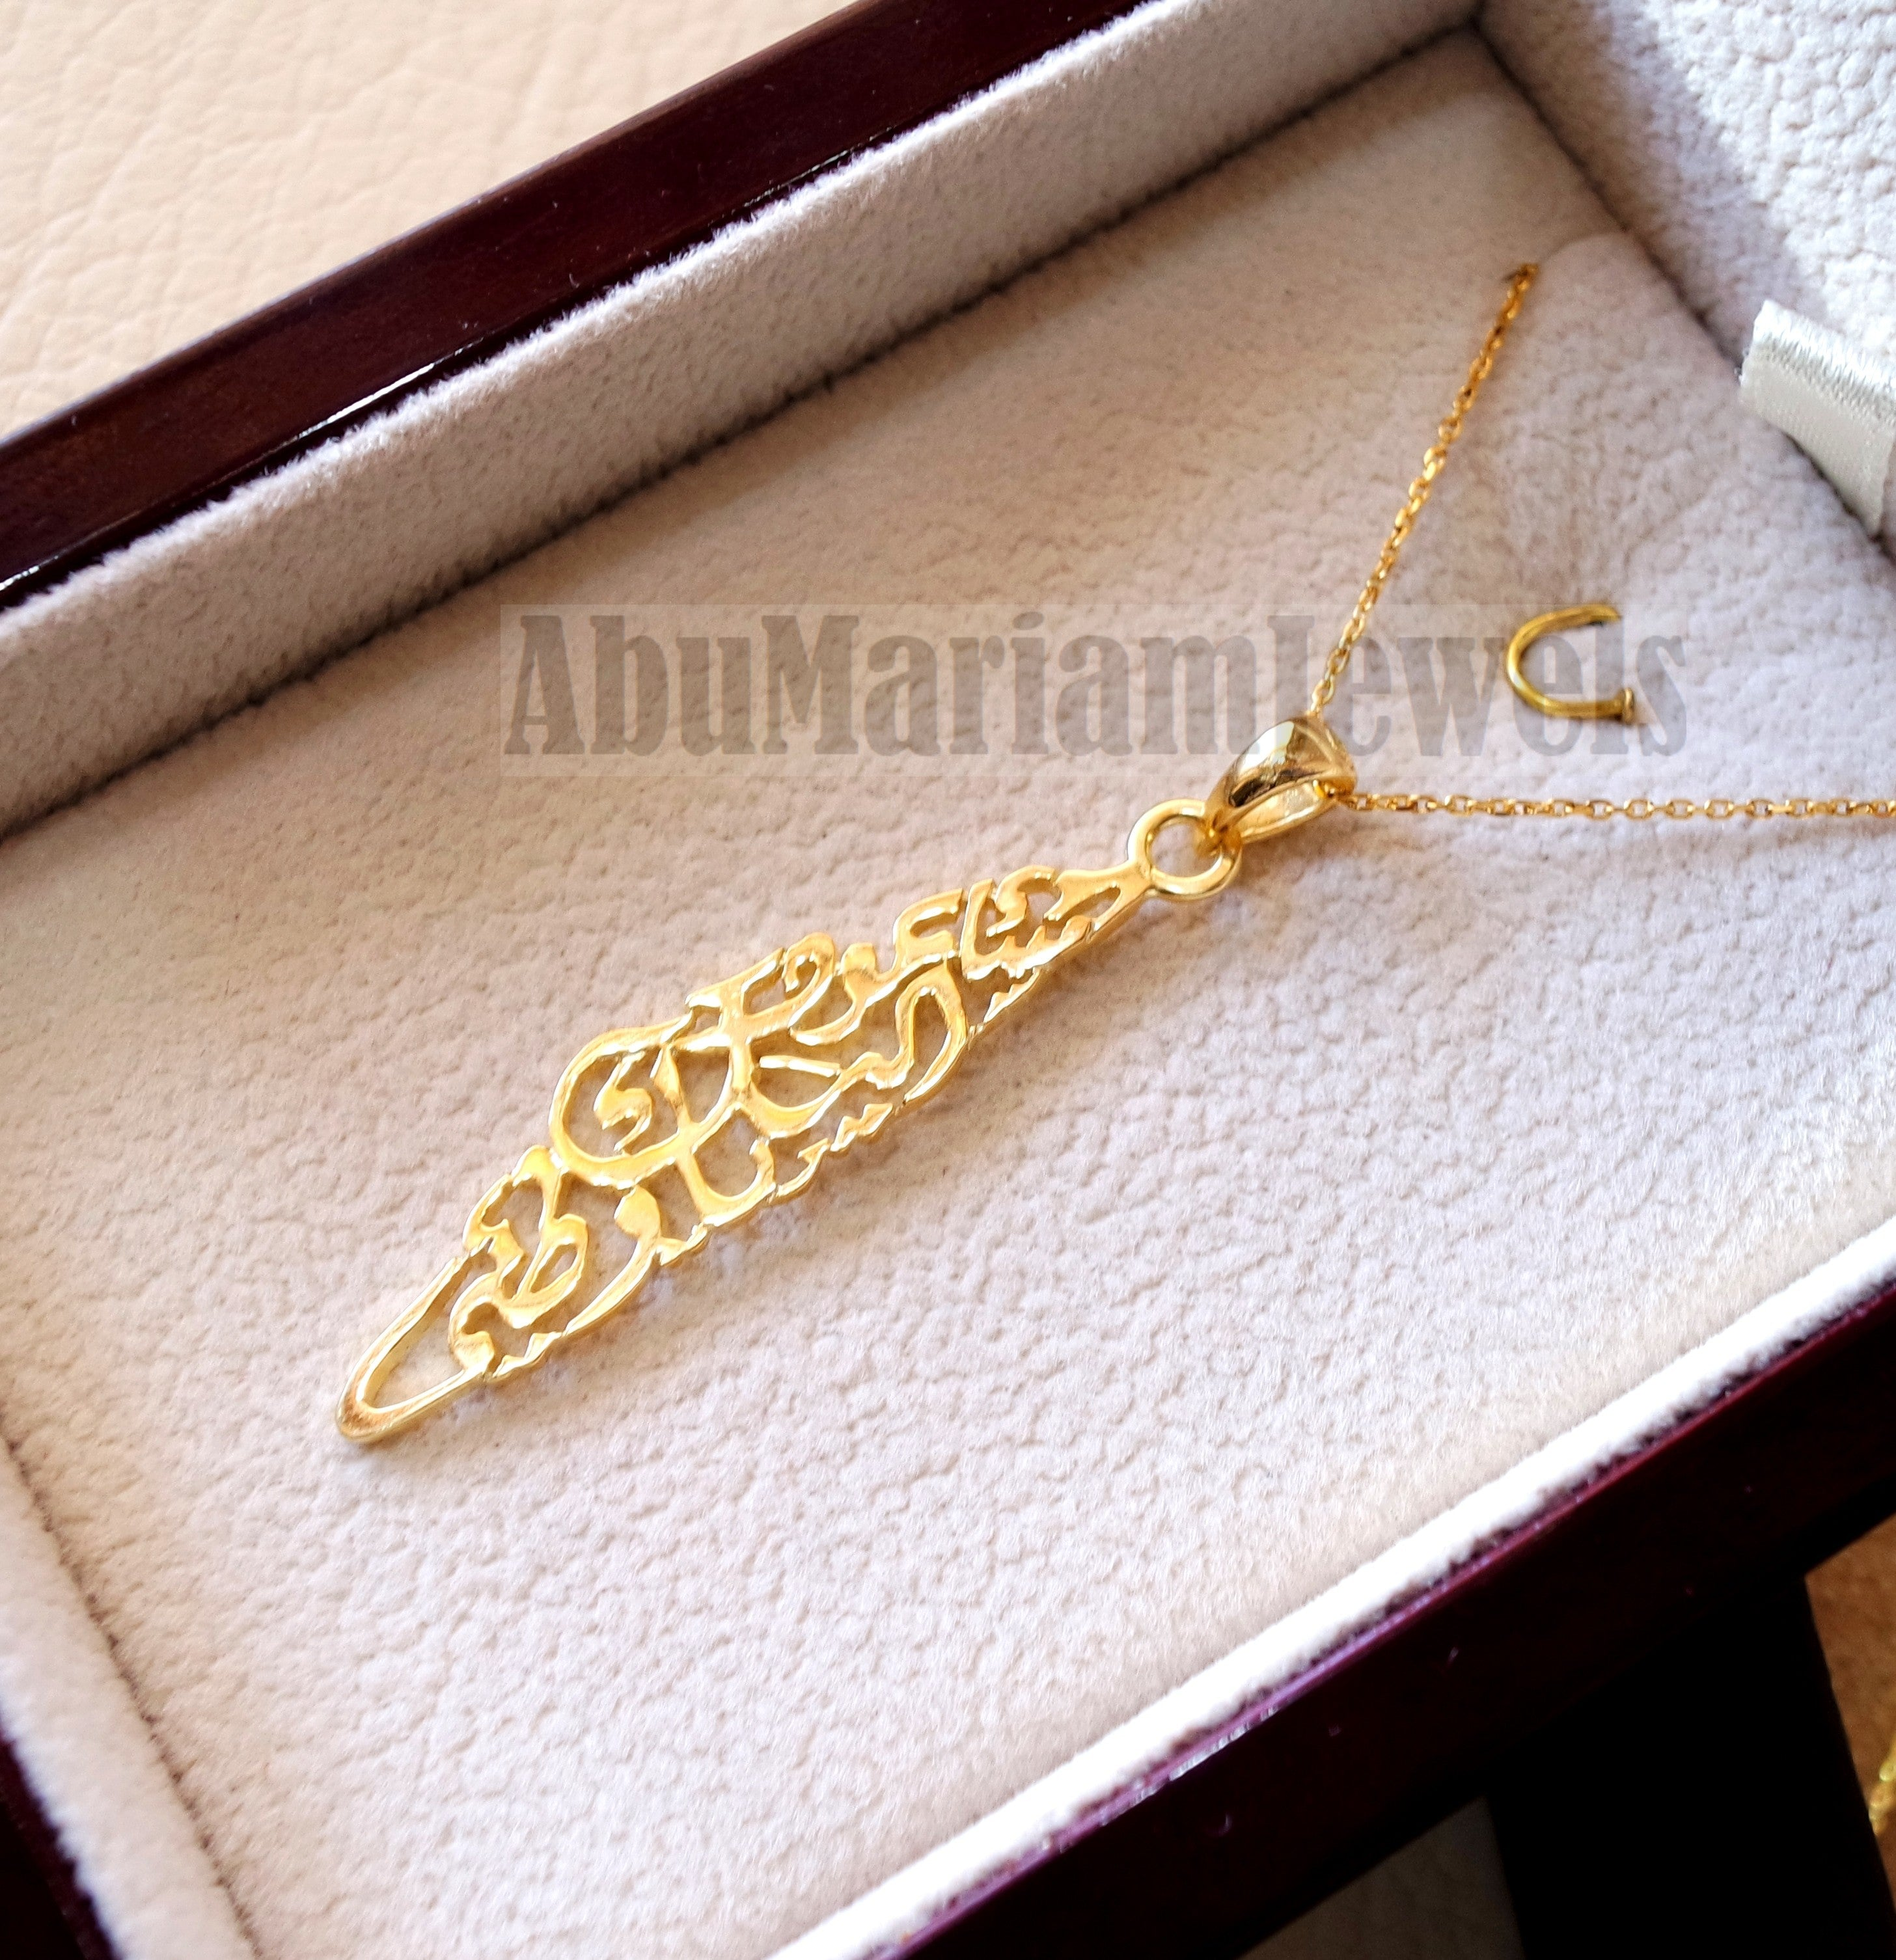 Palestine map necklace chain and pendant with famous verse 18K gold jewelry arabic fast shipping خارطه و علم فلسطين